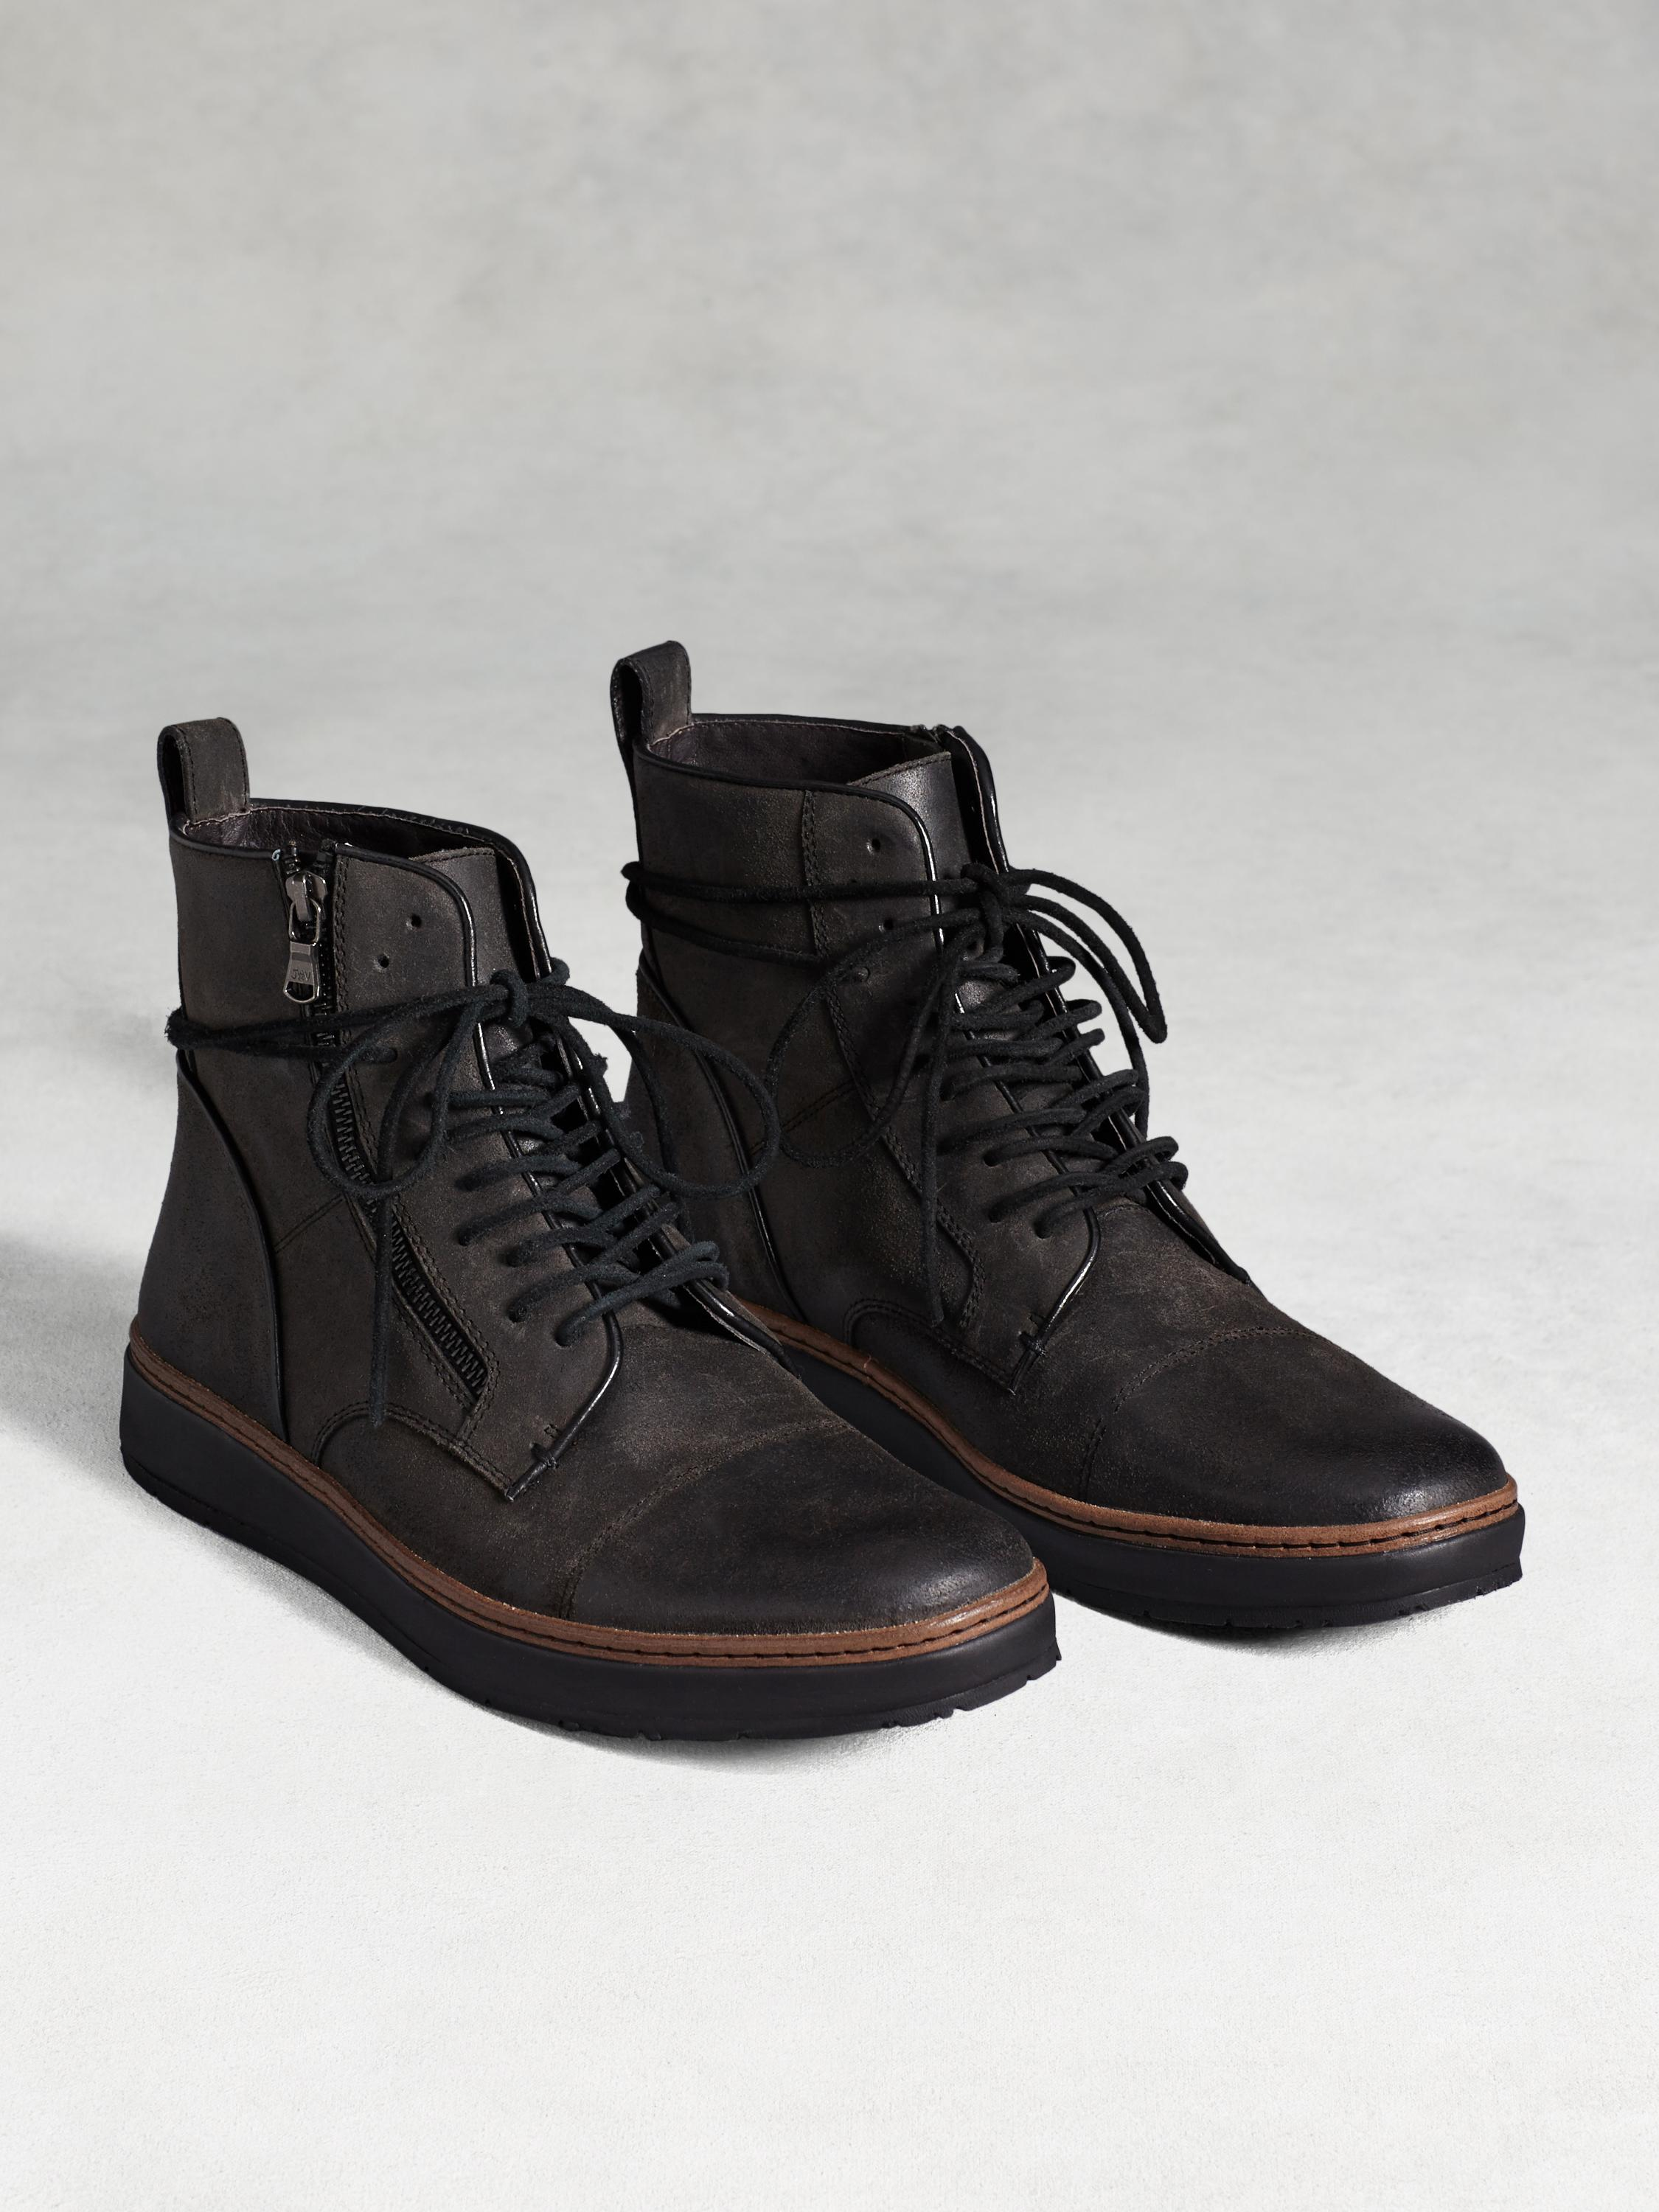 Barrett Creeper High Top Sneaker